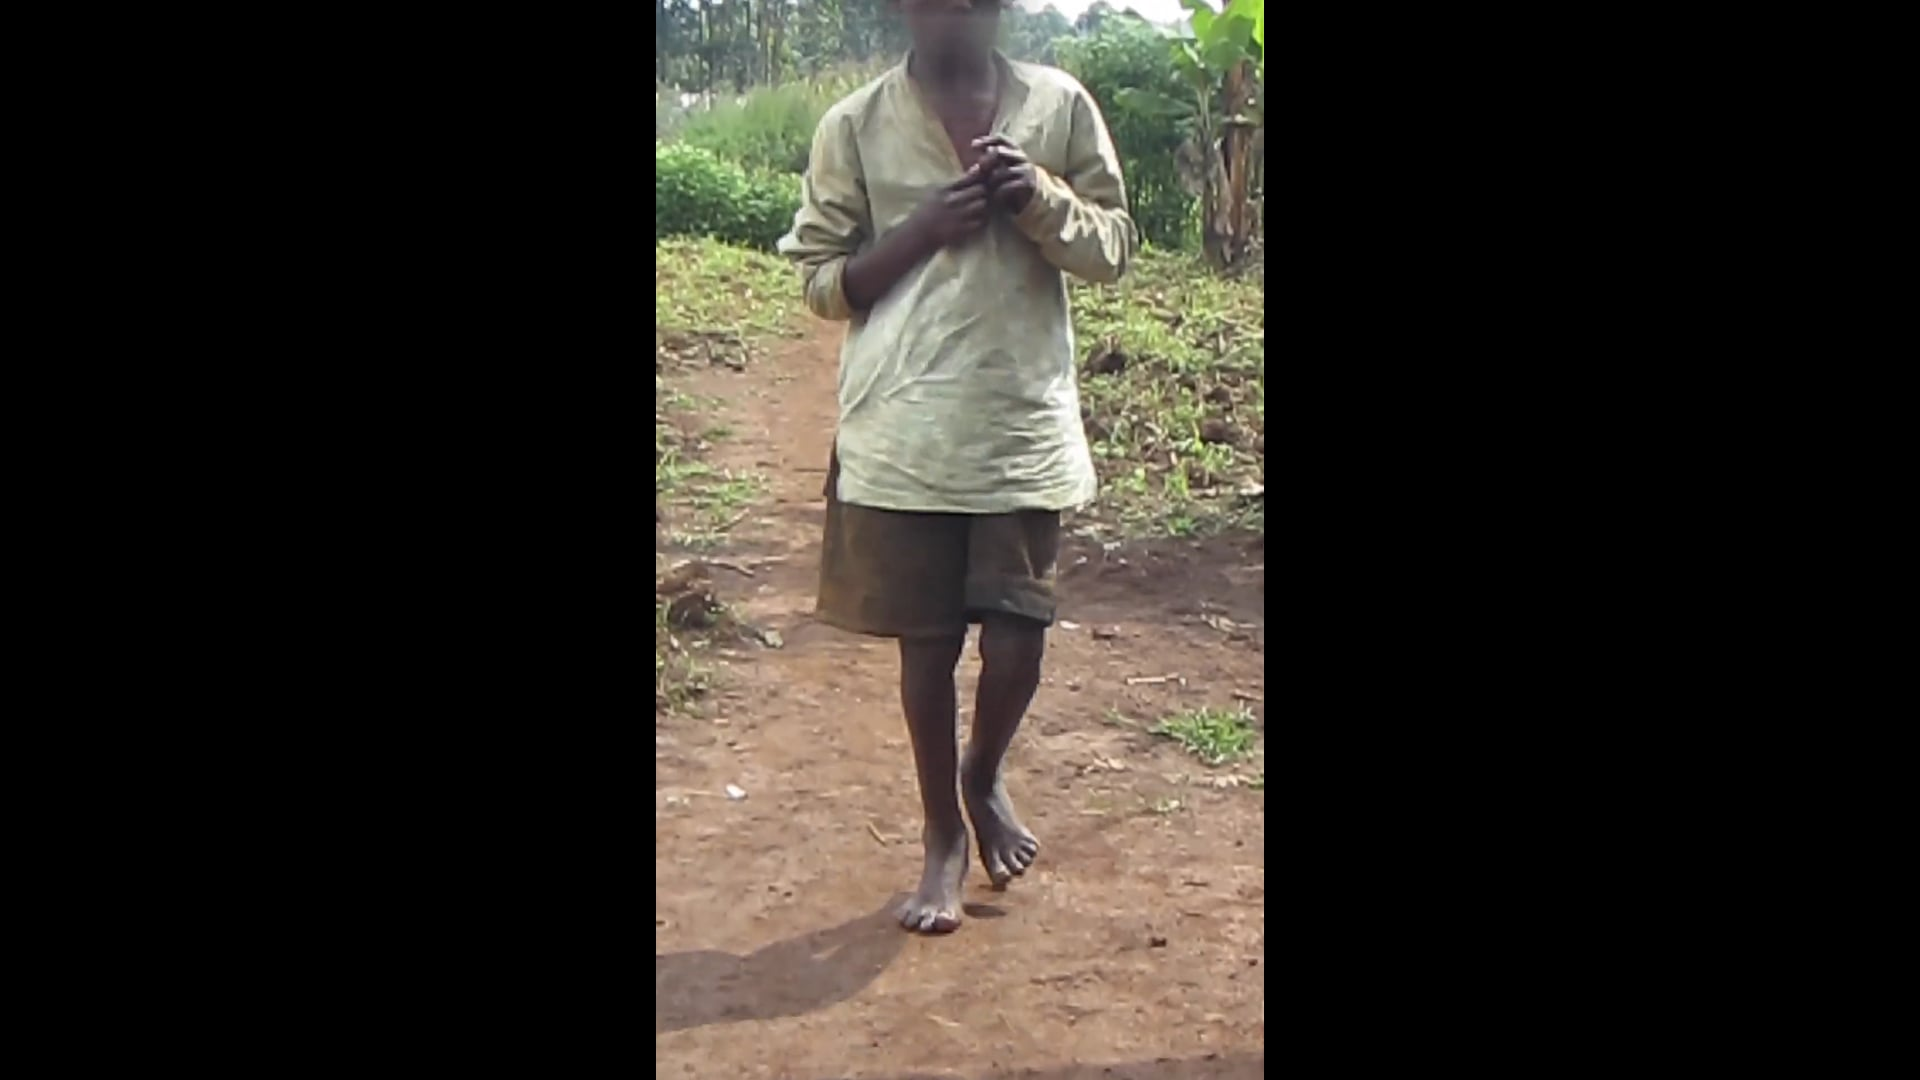 Module 3: Video showing walking difficulties due to severe tungiasis